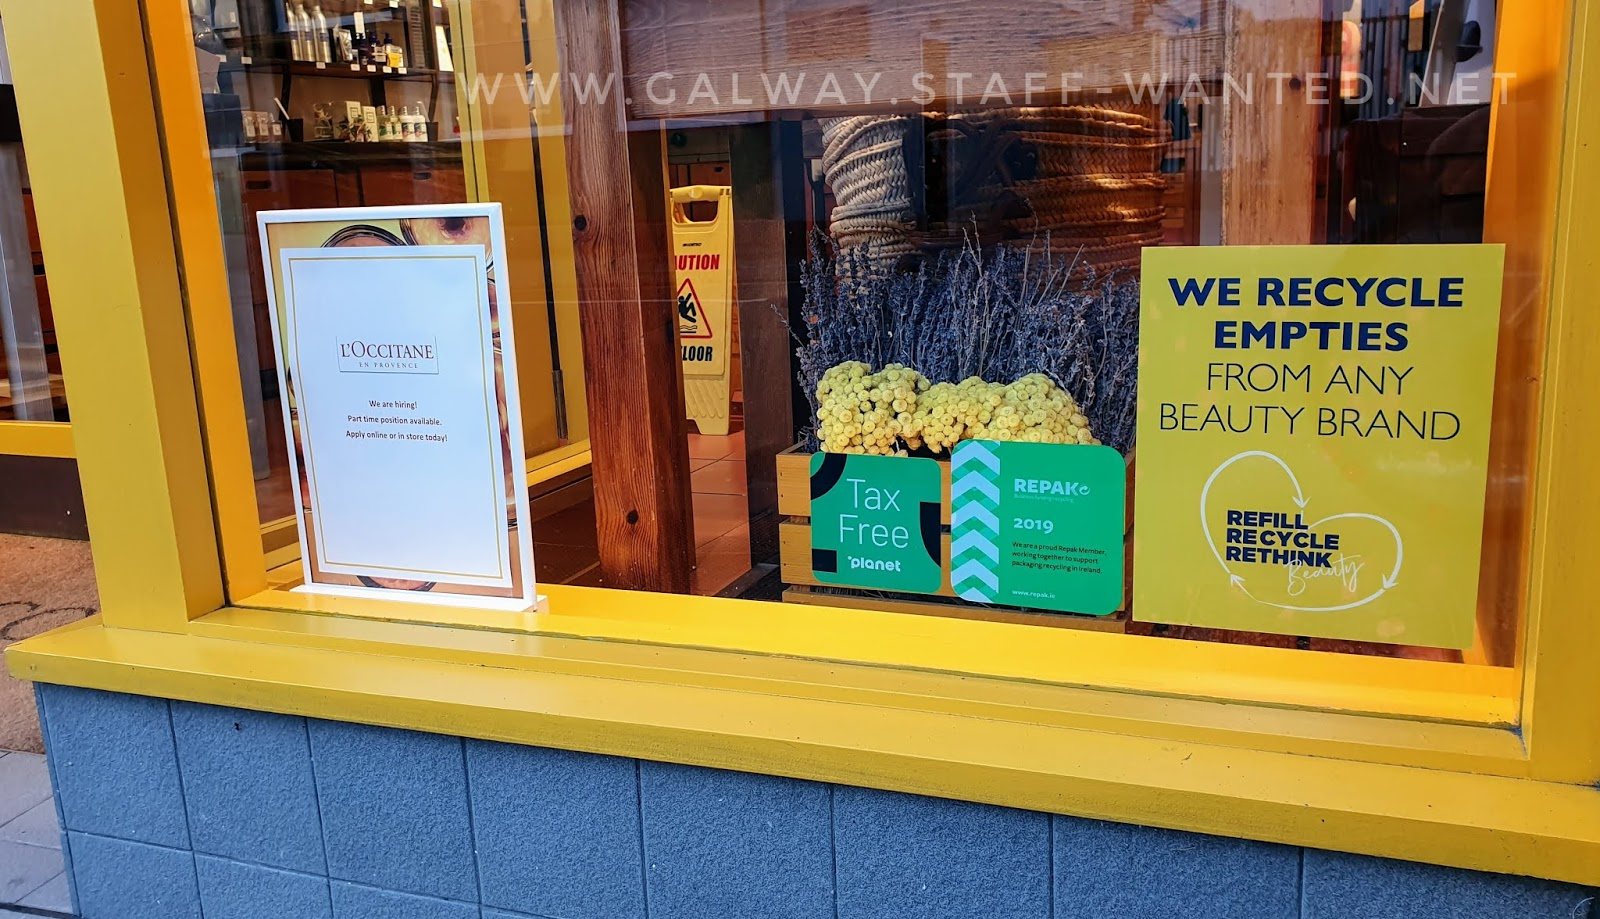 Portion of the lower front window of a shop, featuring a sign that say we recycle empty contains from perfumes of any brand